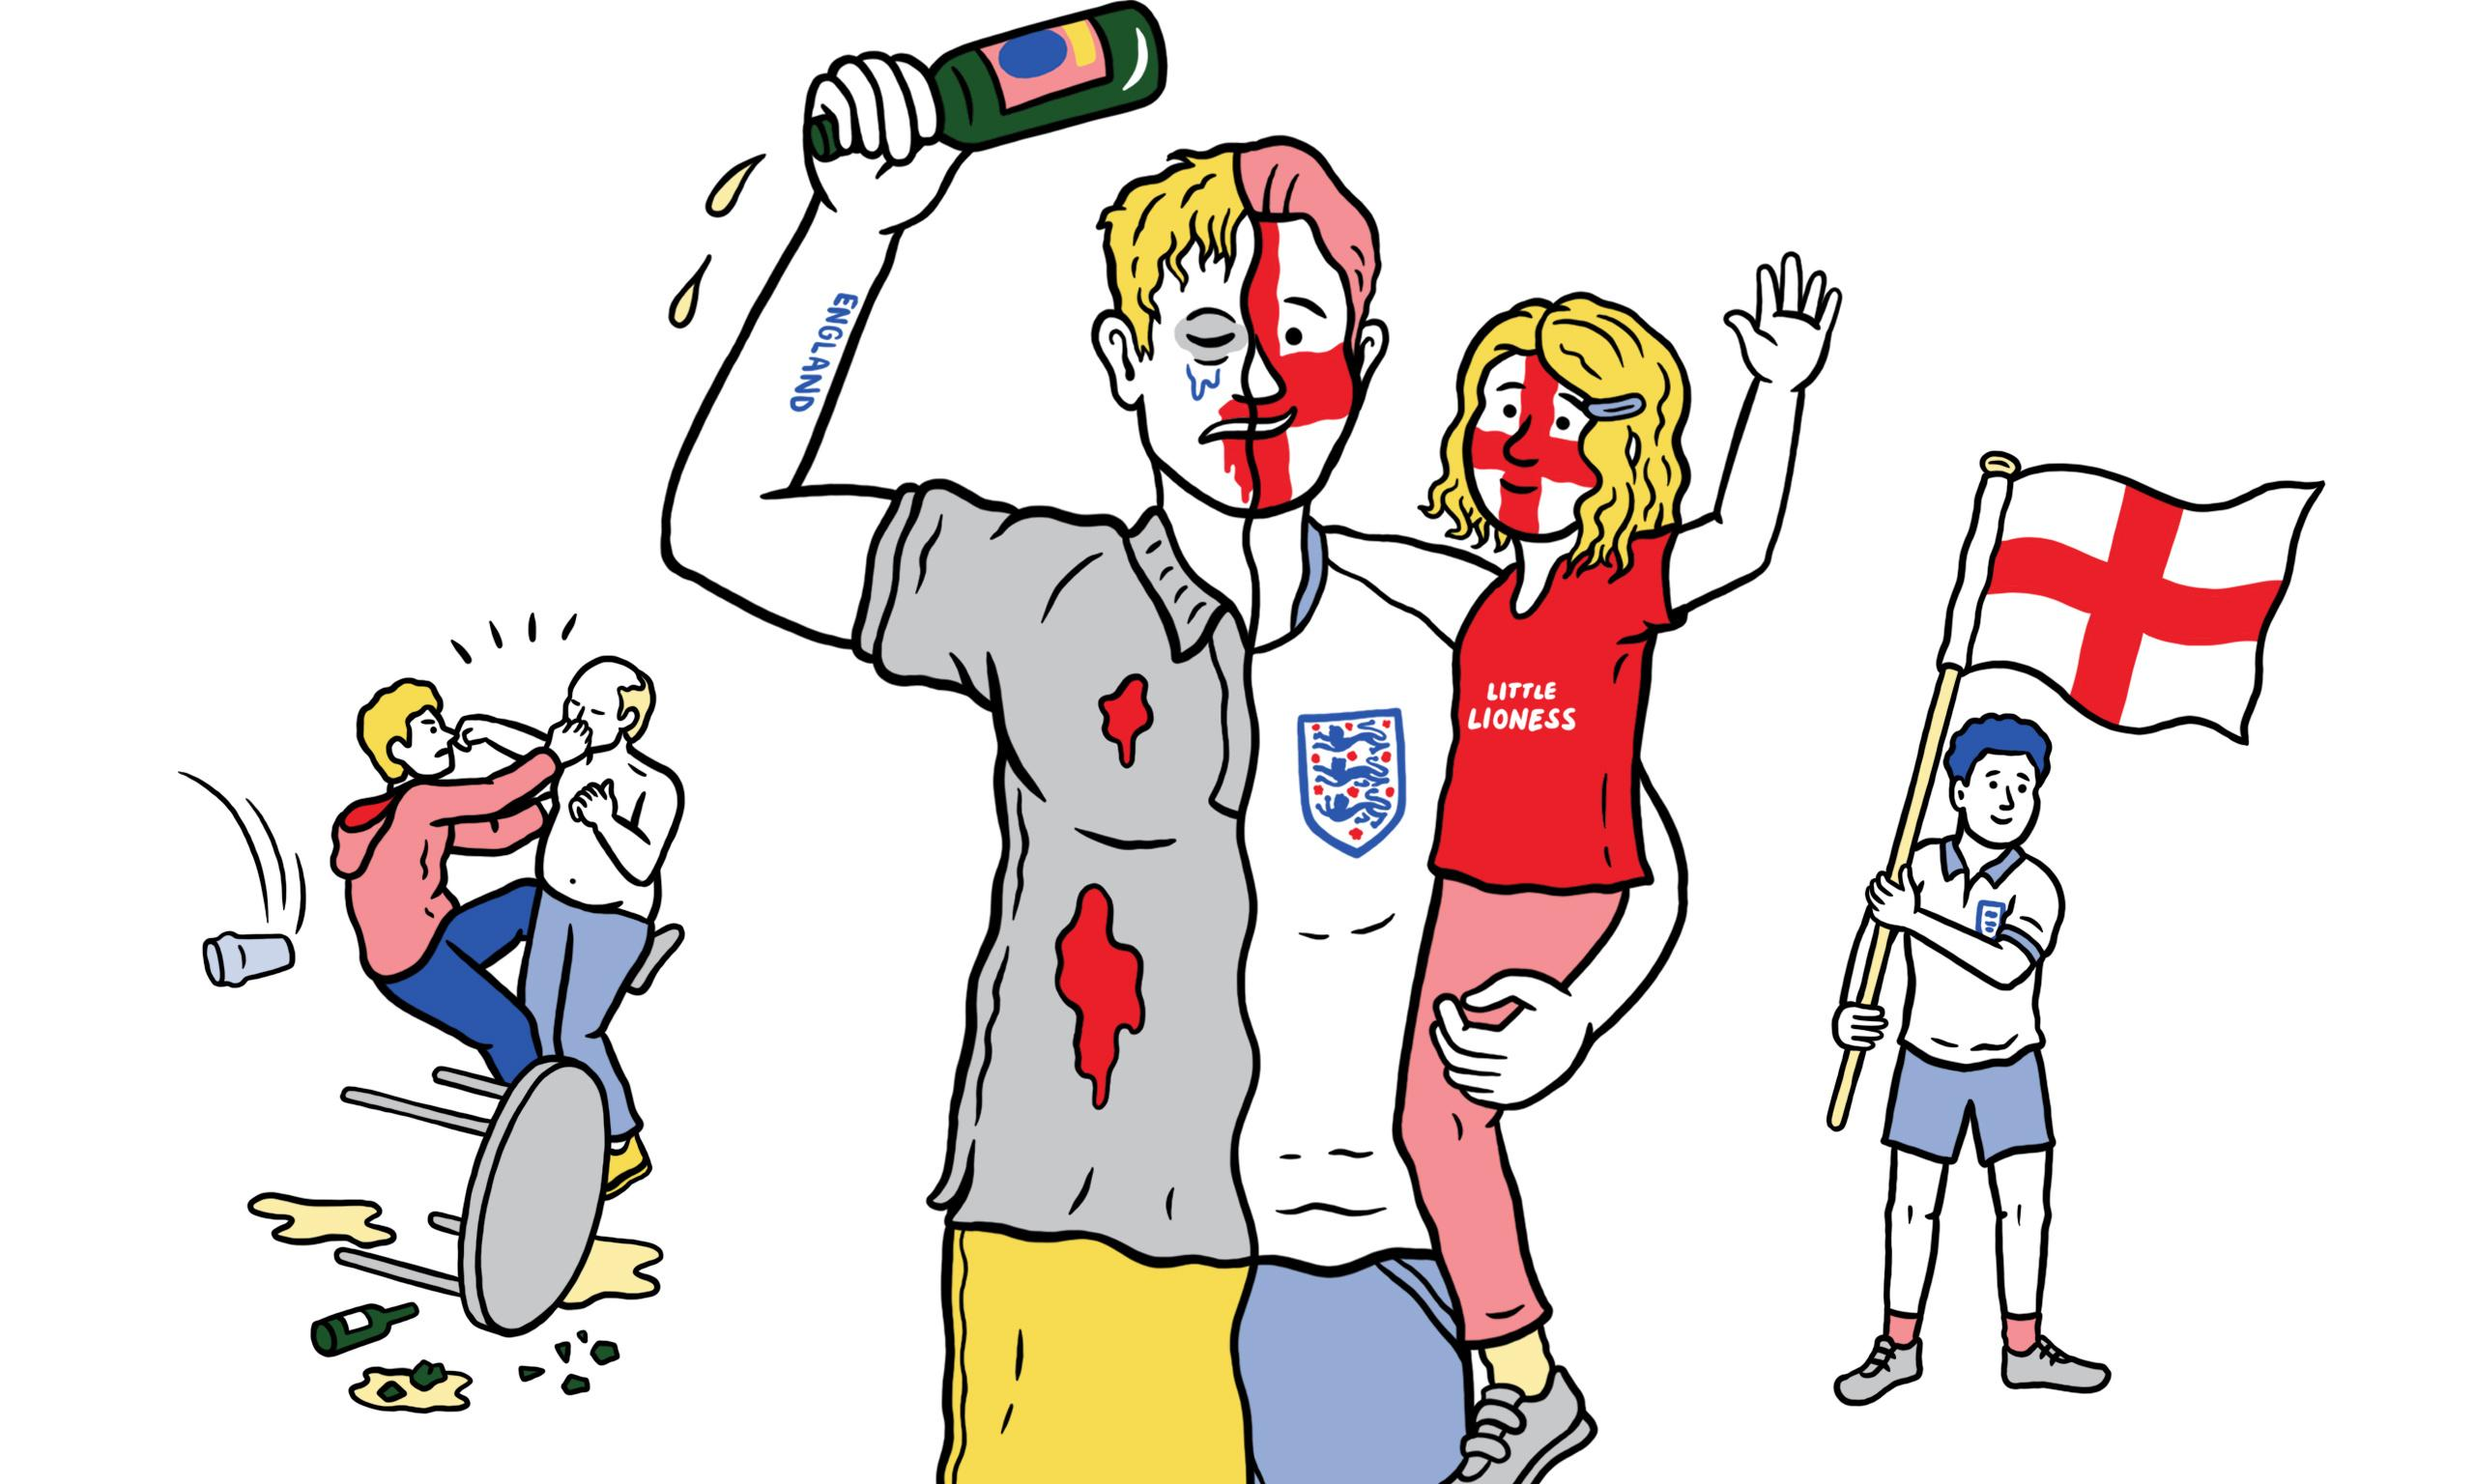 England trips are being co-opted by the right but football has resisted before